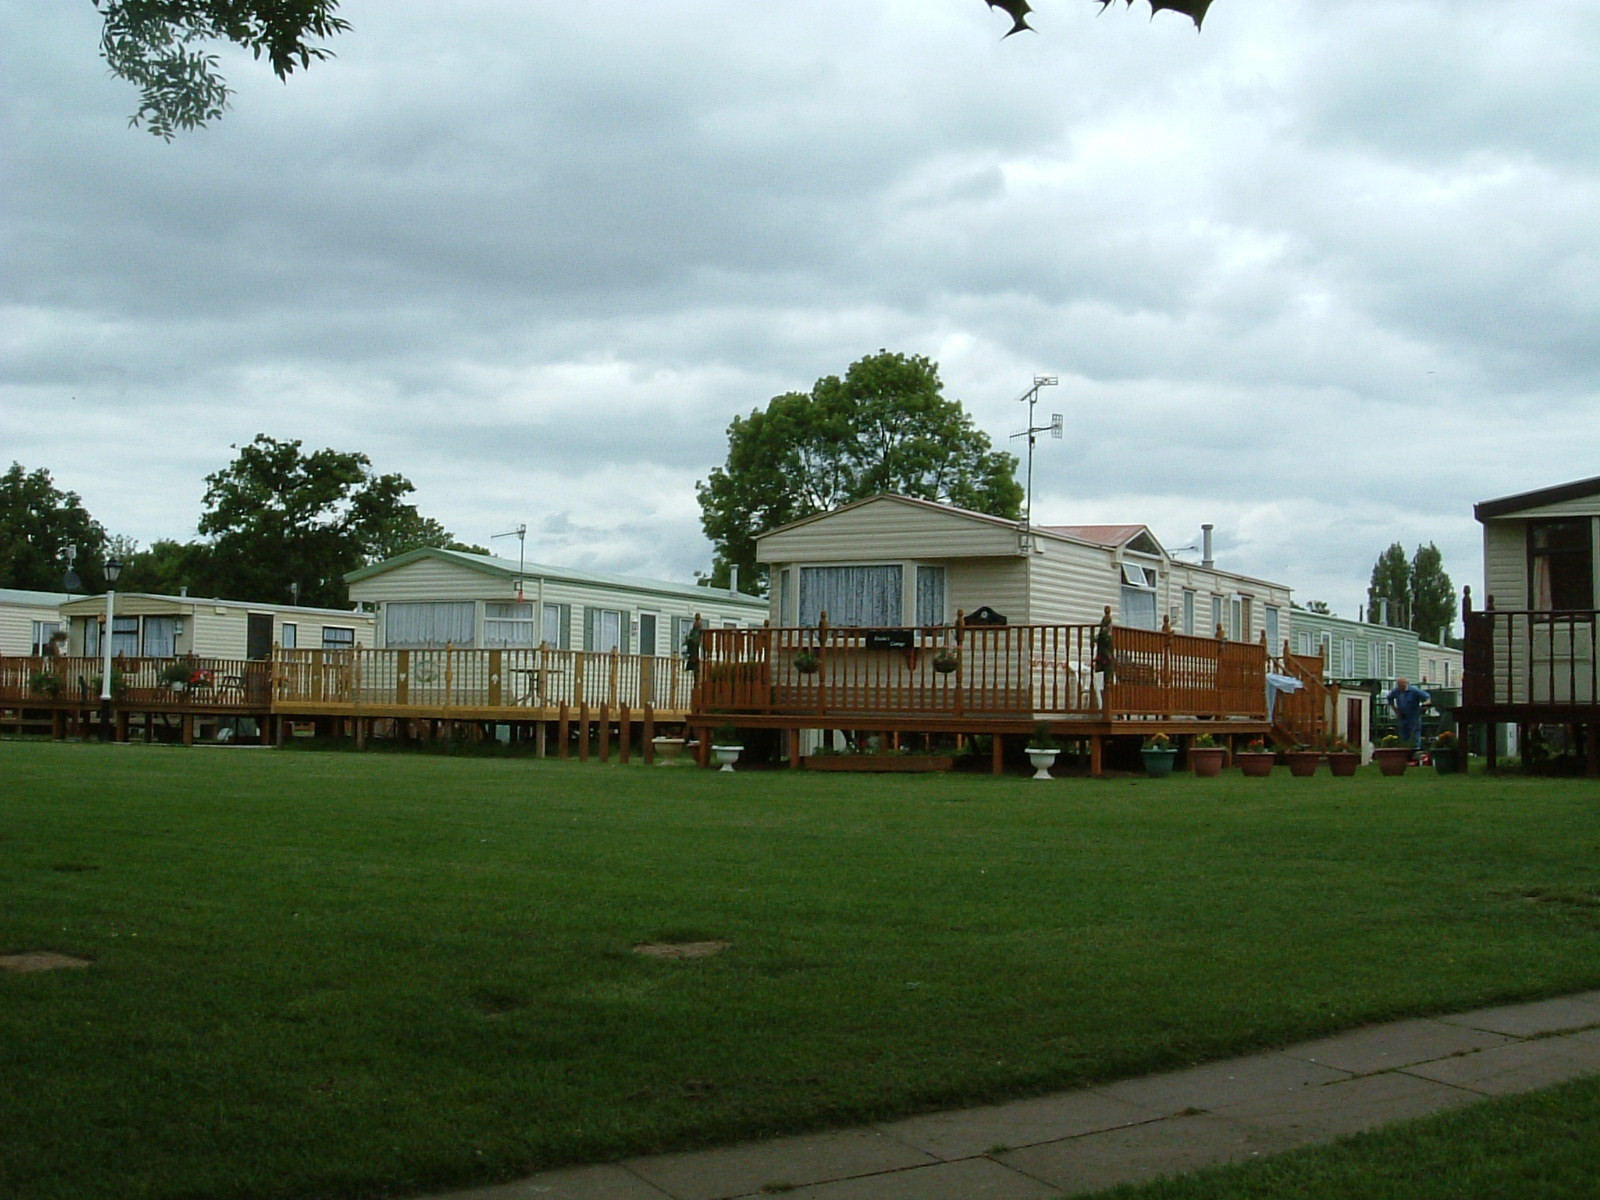 Very posh static caravans by the Severn